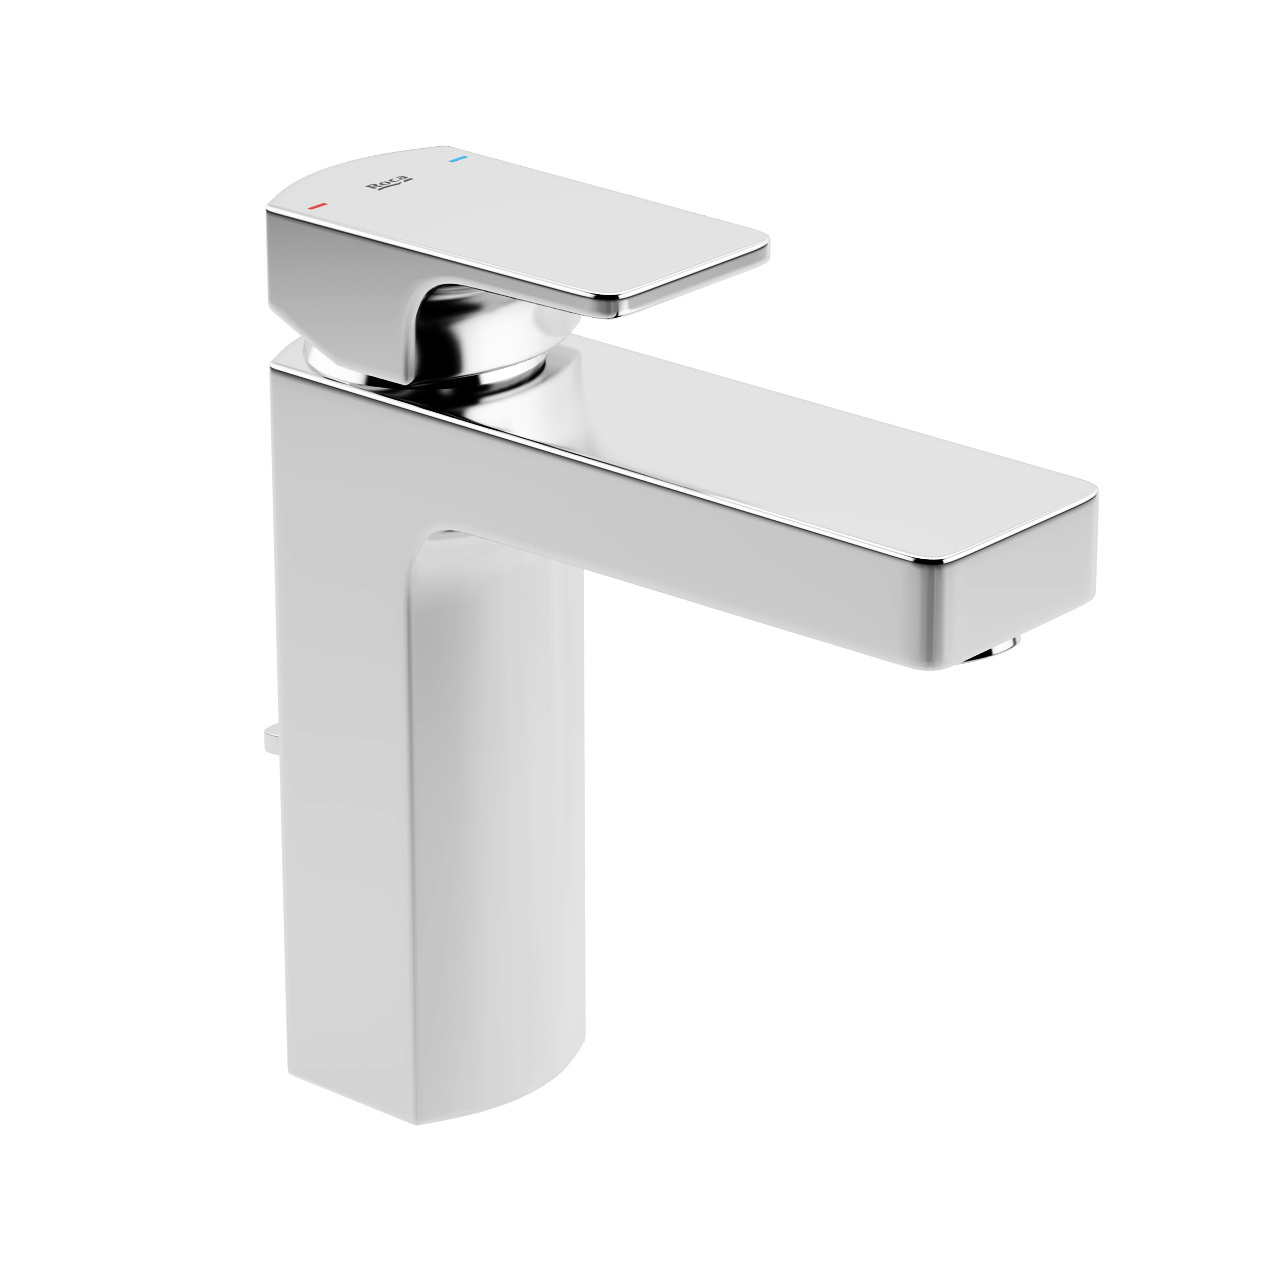 L90 Basin Mixer Tap by Roca